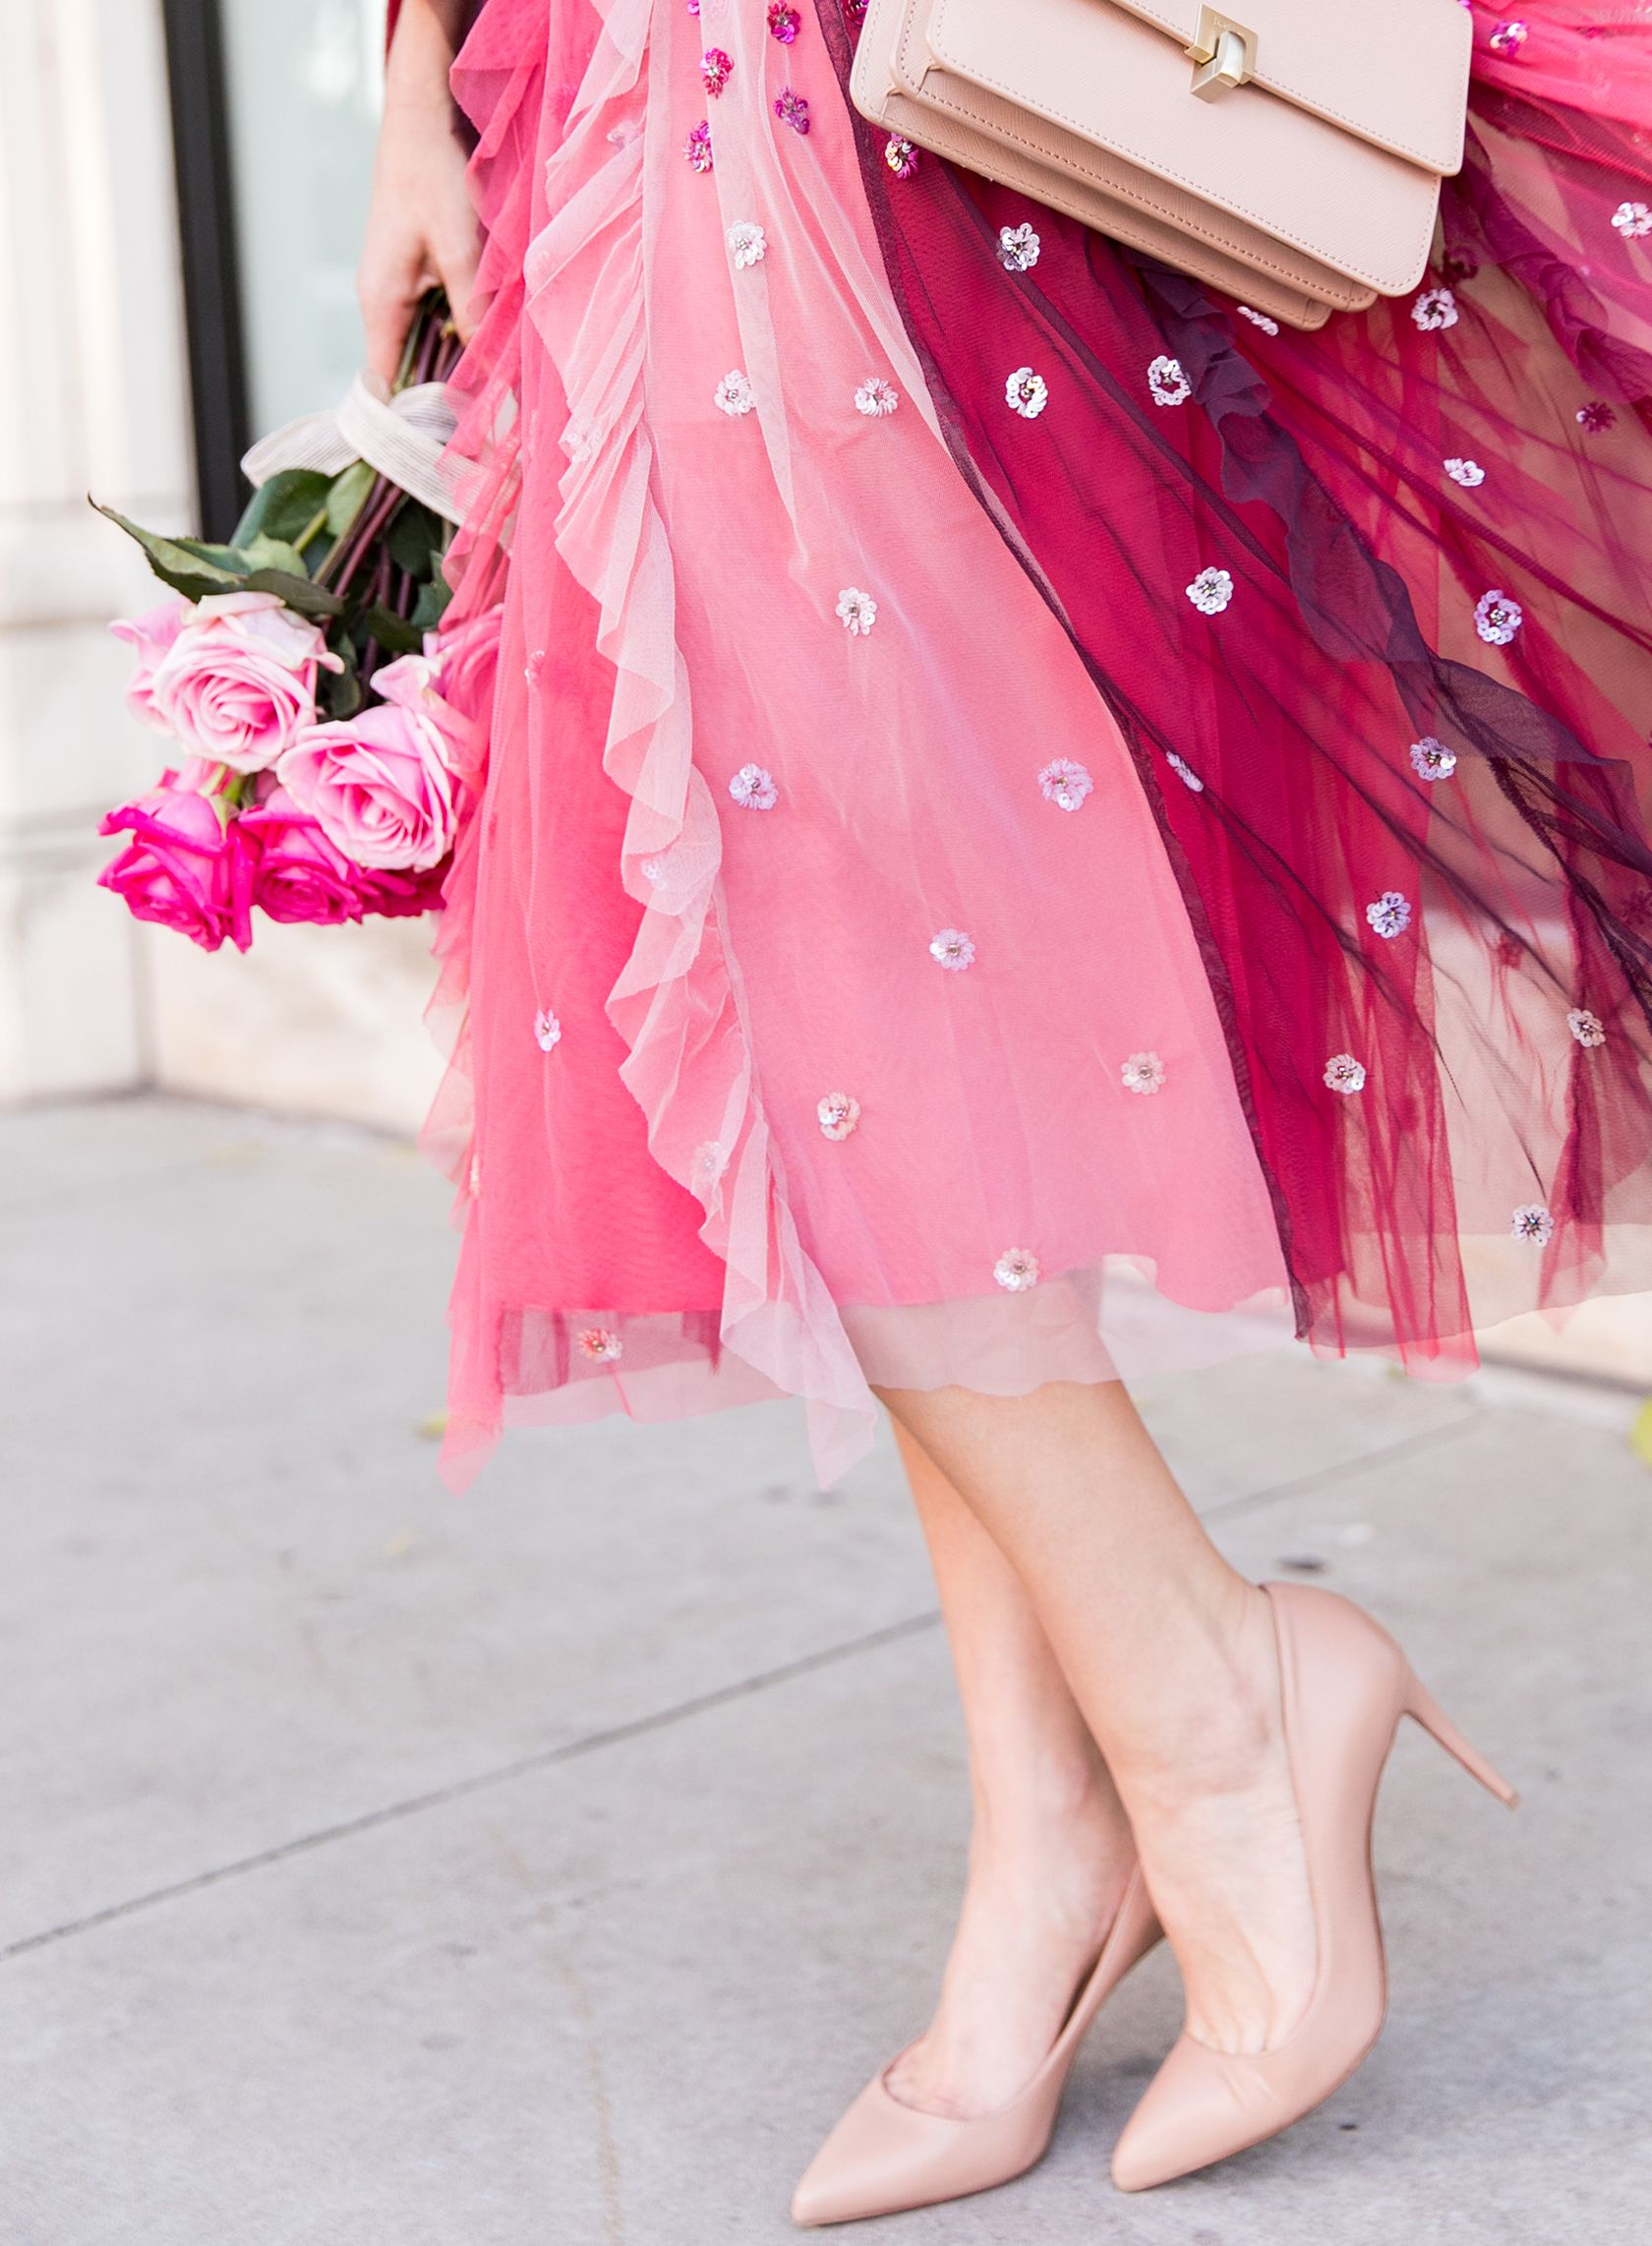 81a7da8748a Galentine's Day In A Tulle Skirt & Fur | Shoe Crush | Tulle, Skirts ...